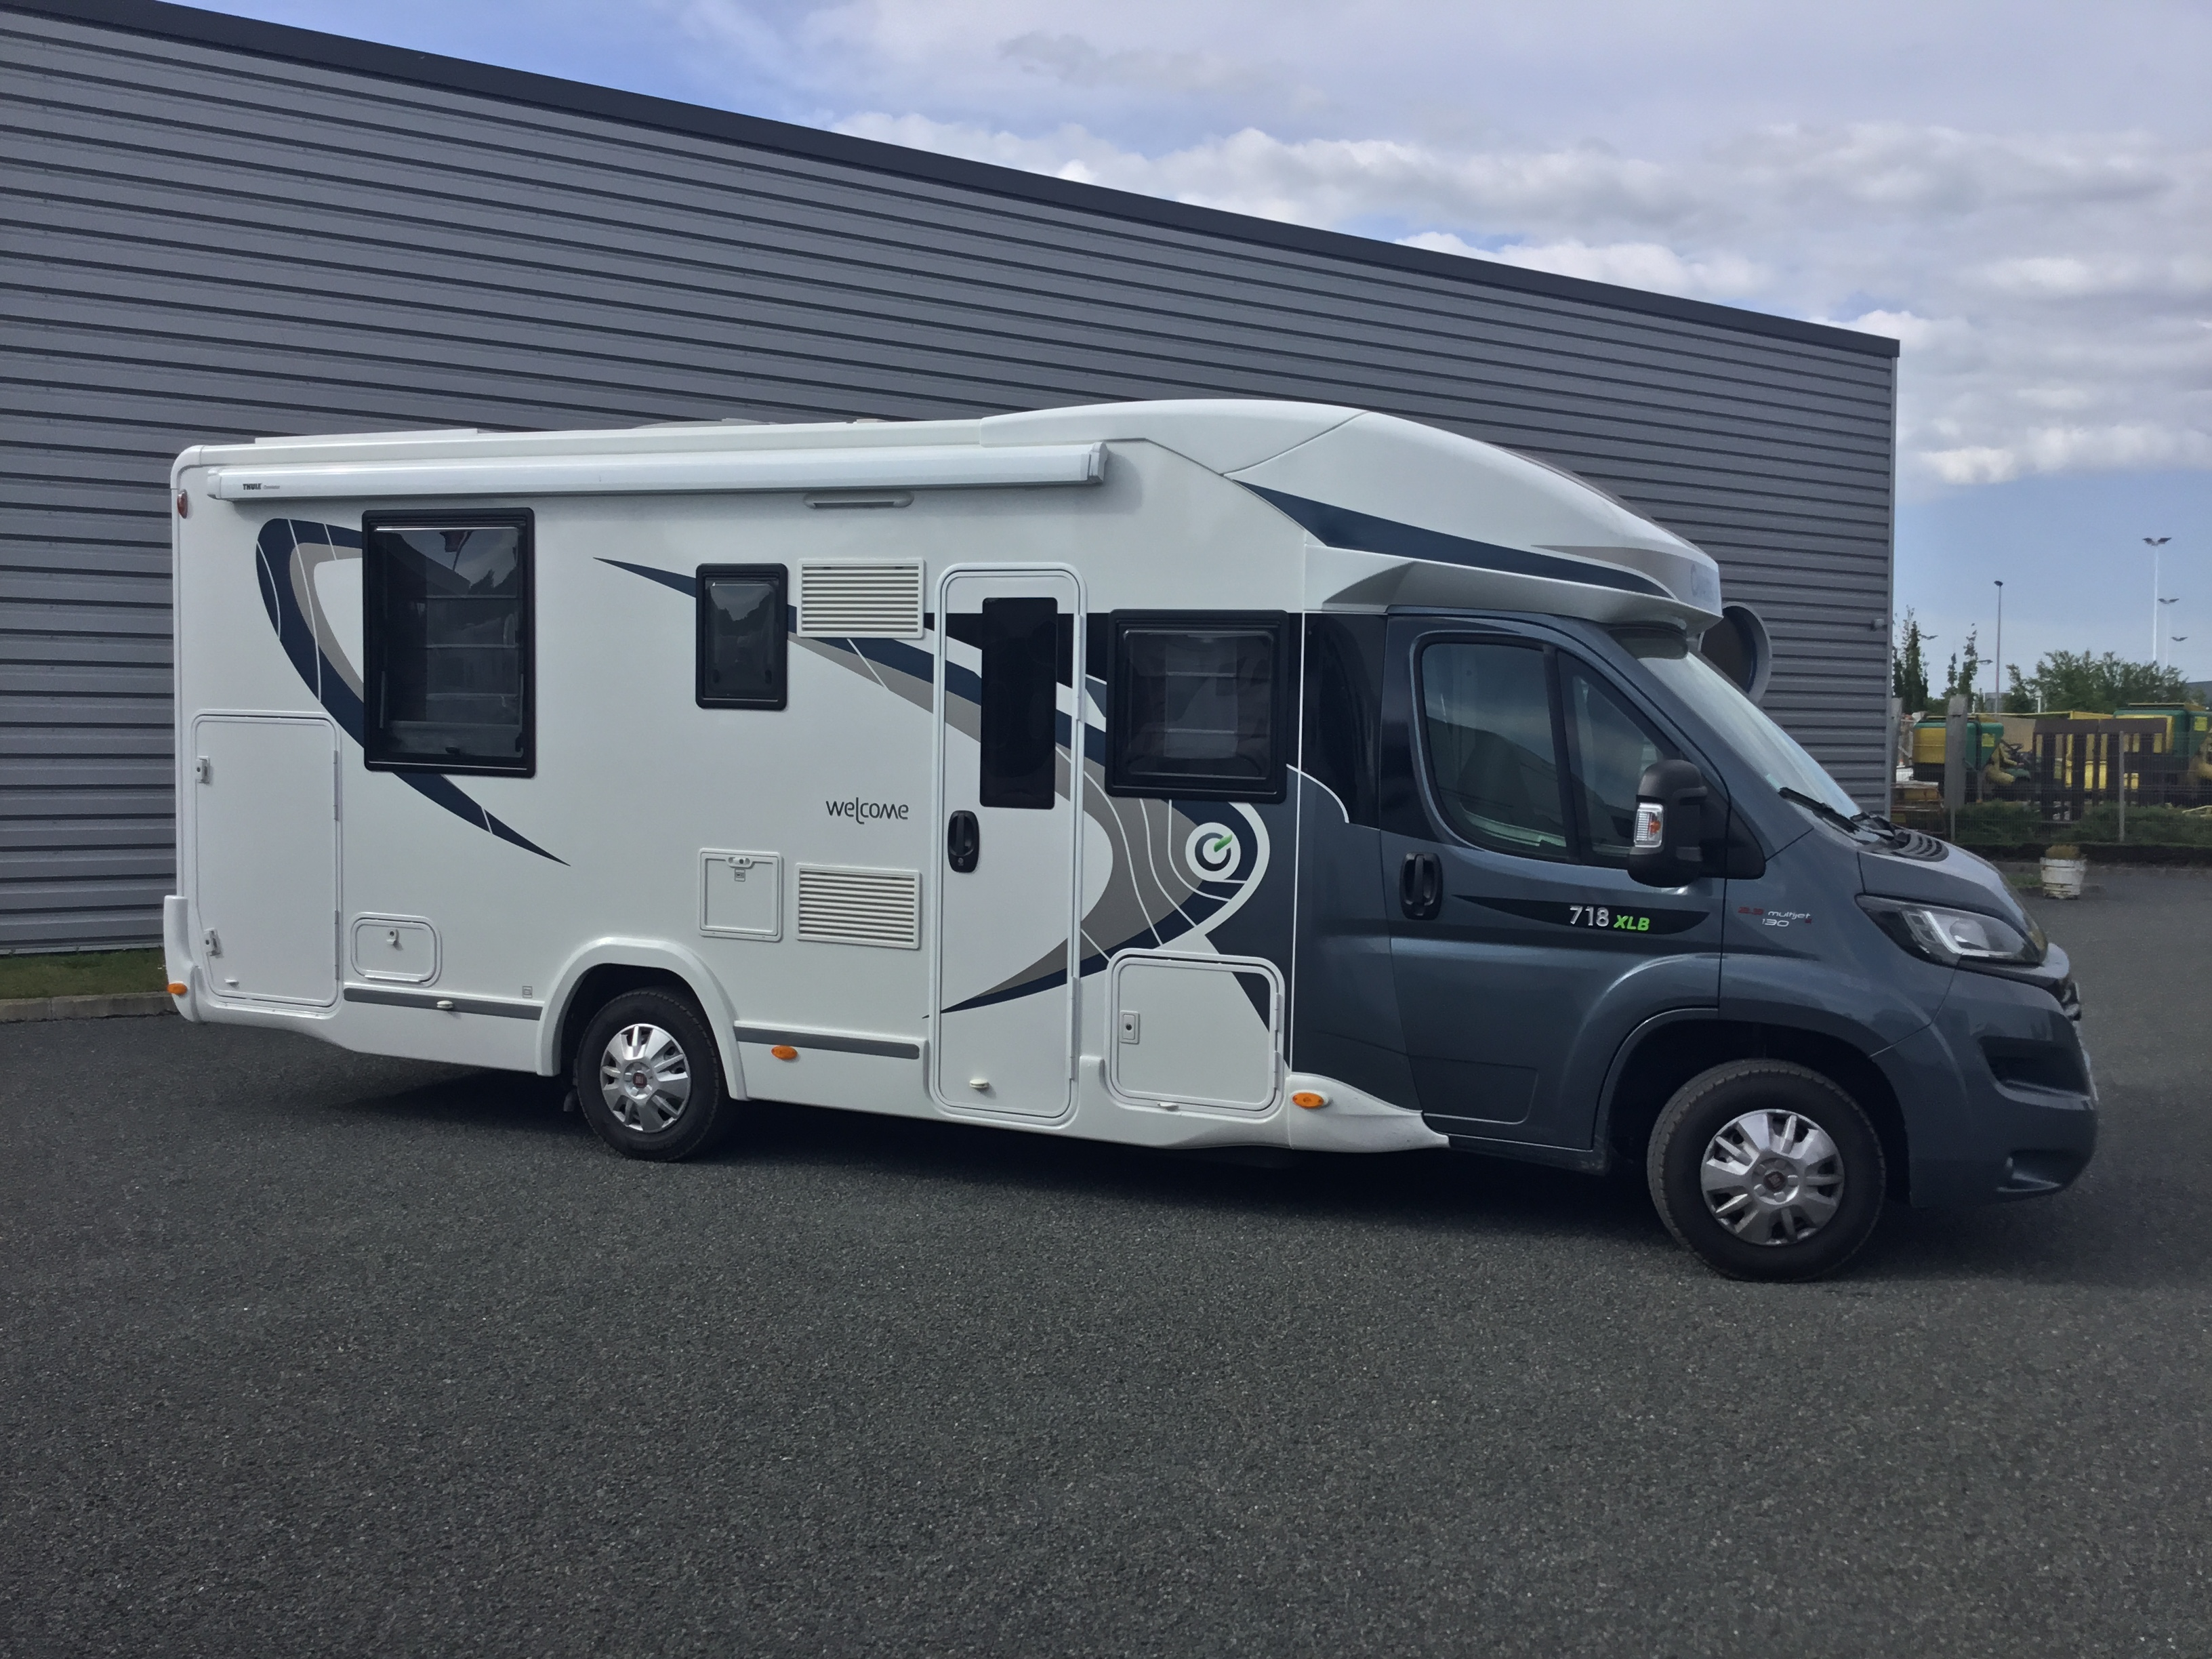 Camping car chausson welcome 718 eb occasion